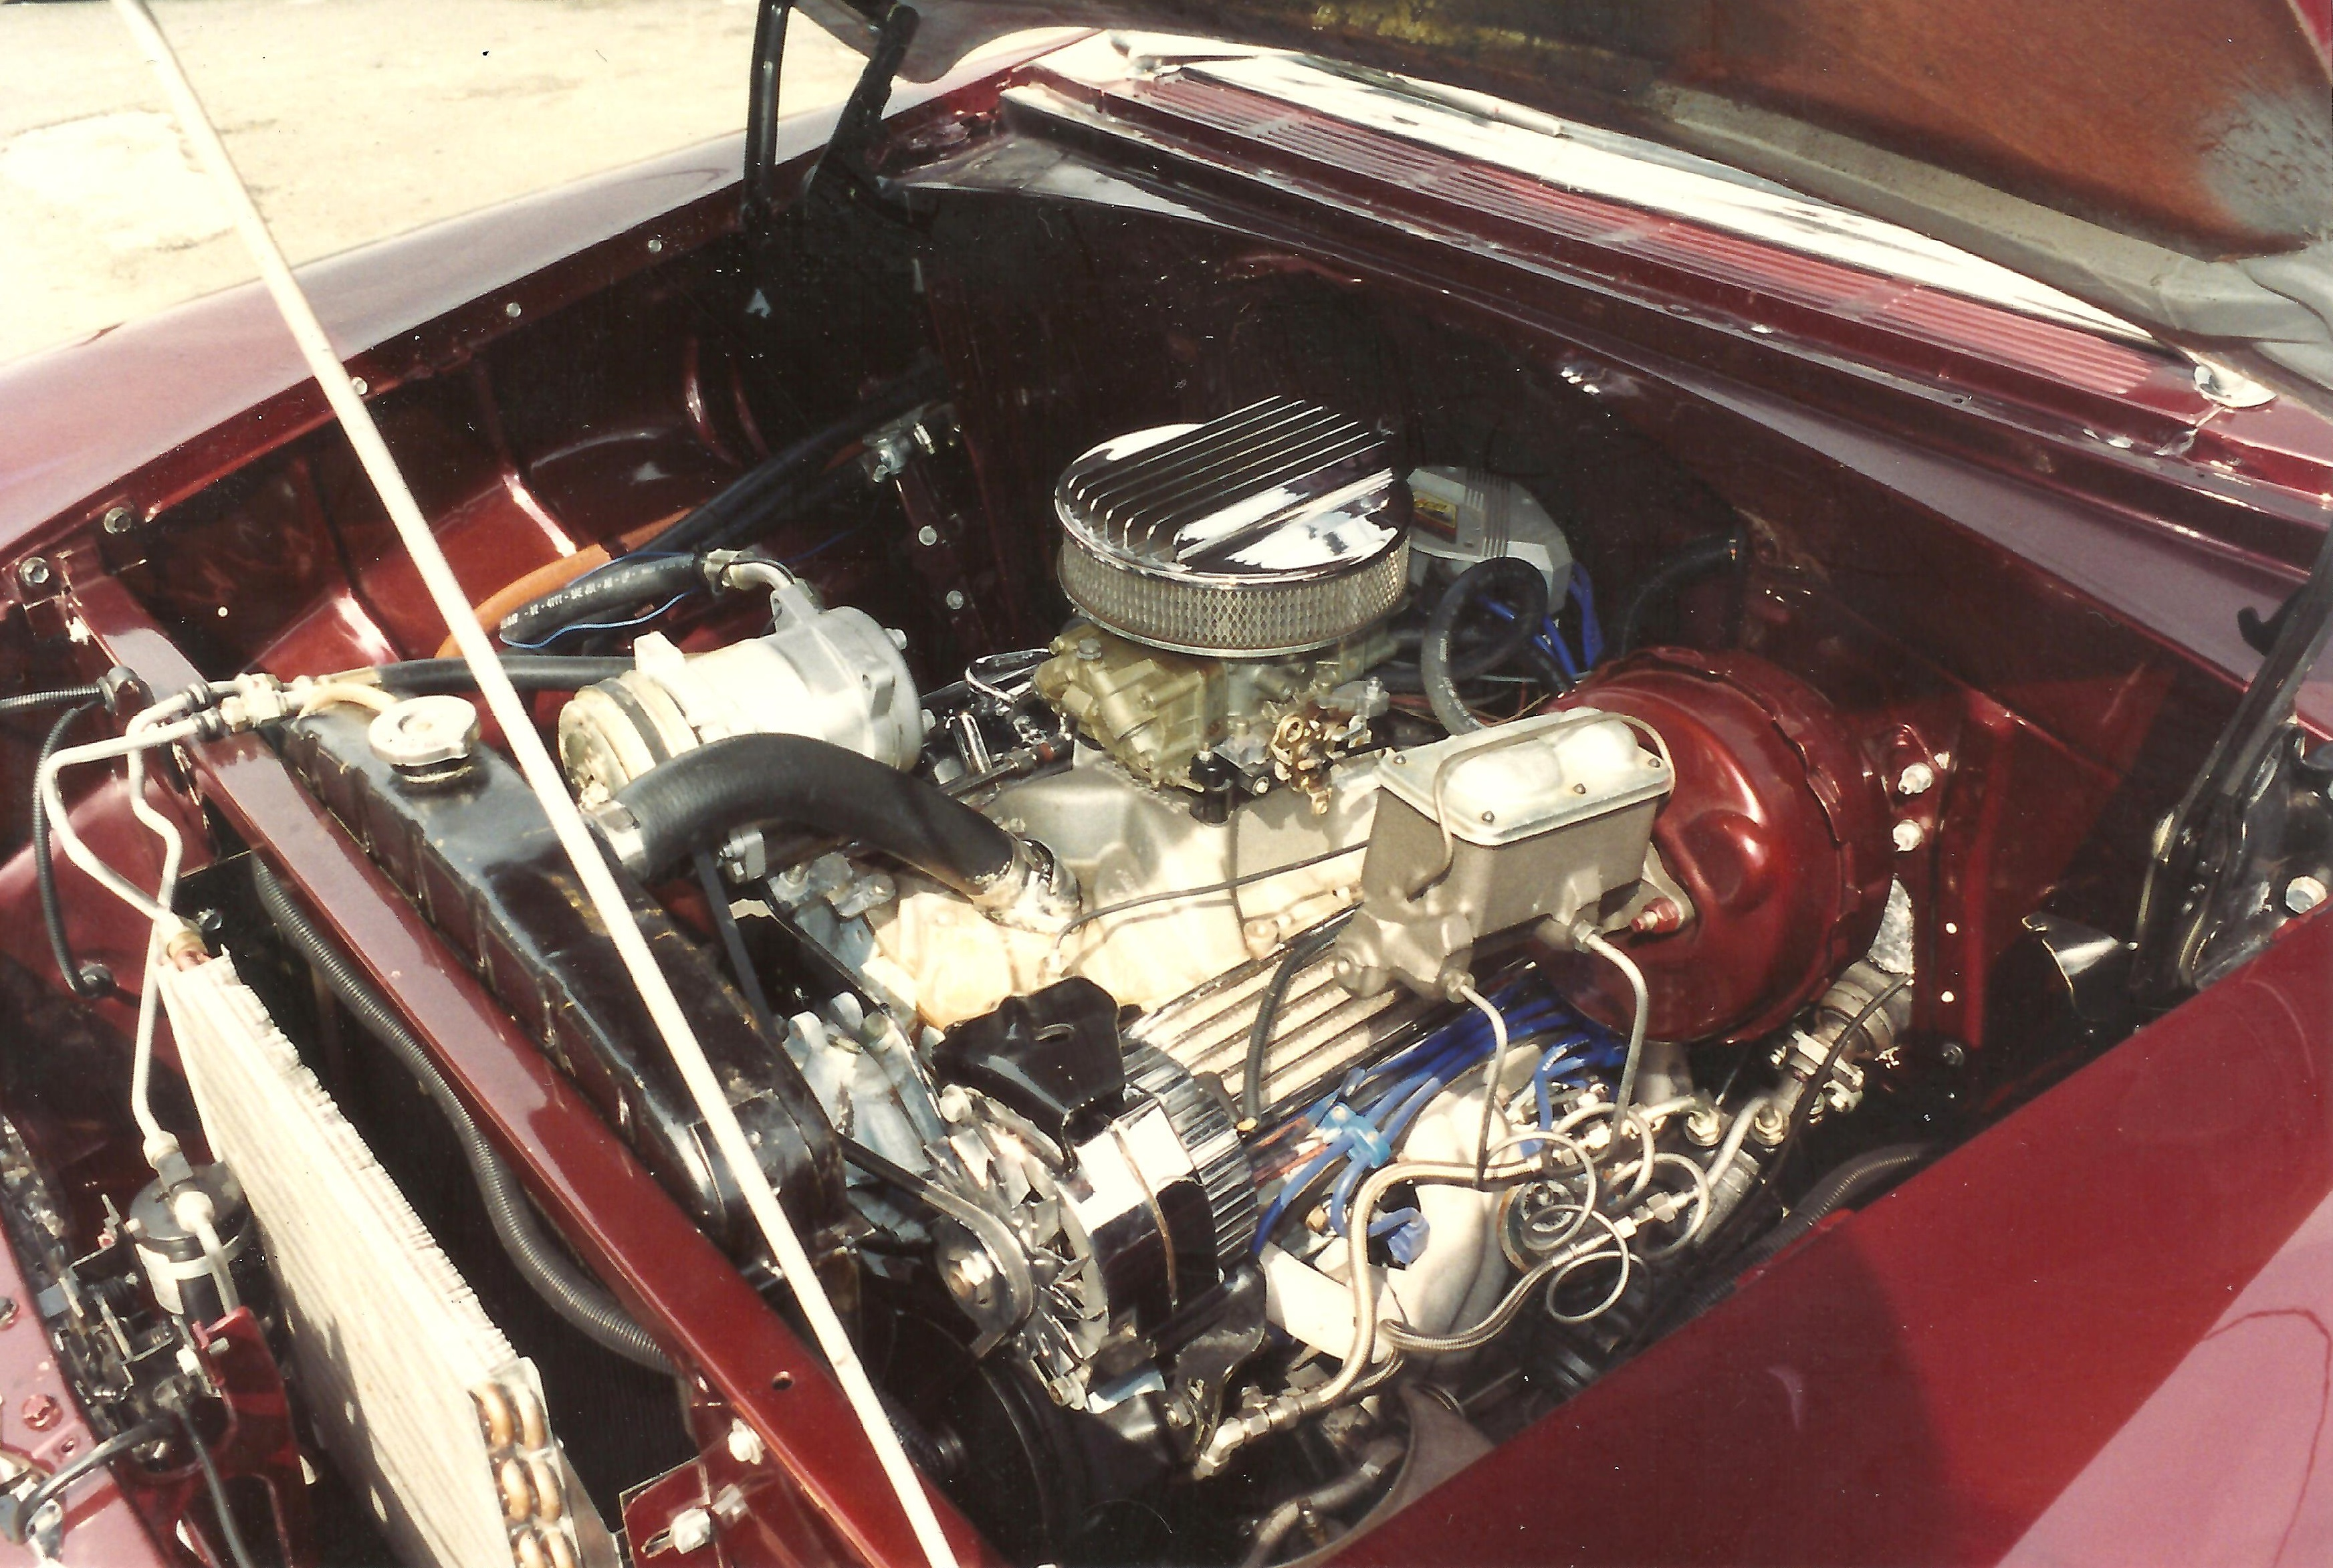 Rusty's 55 engine